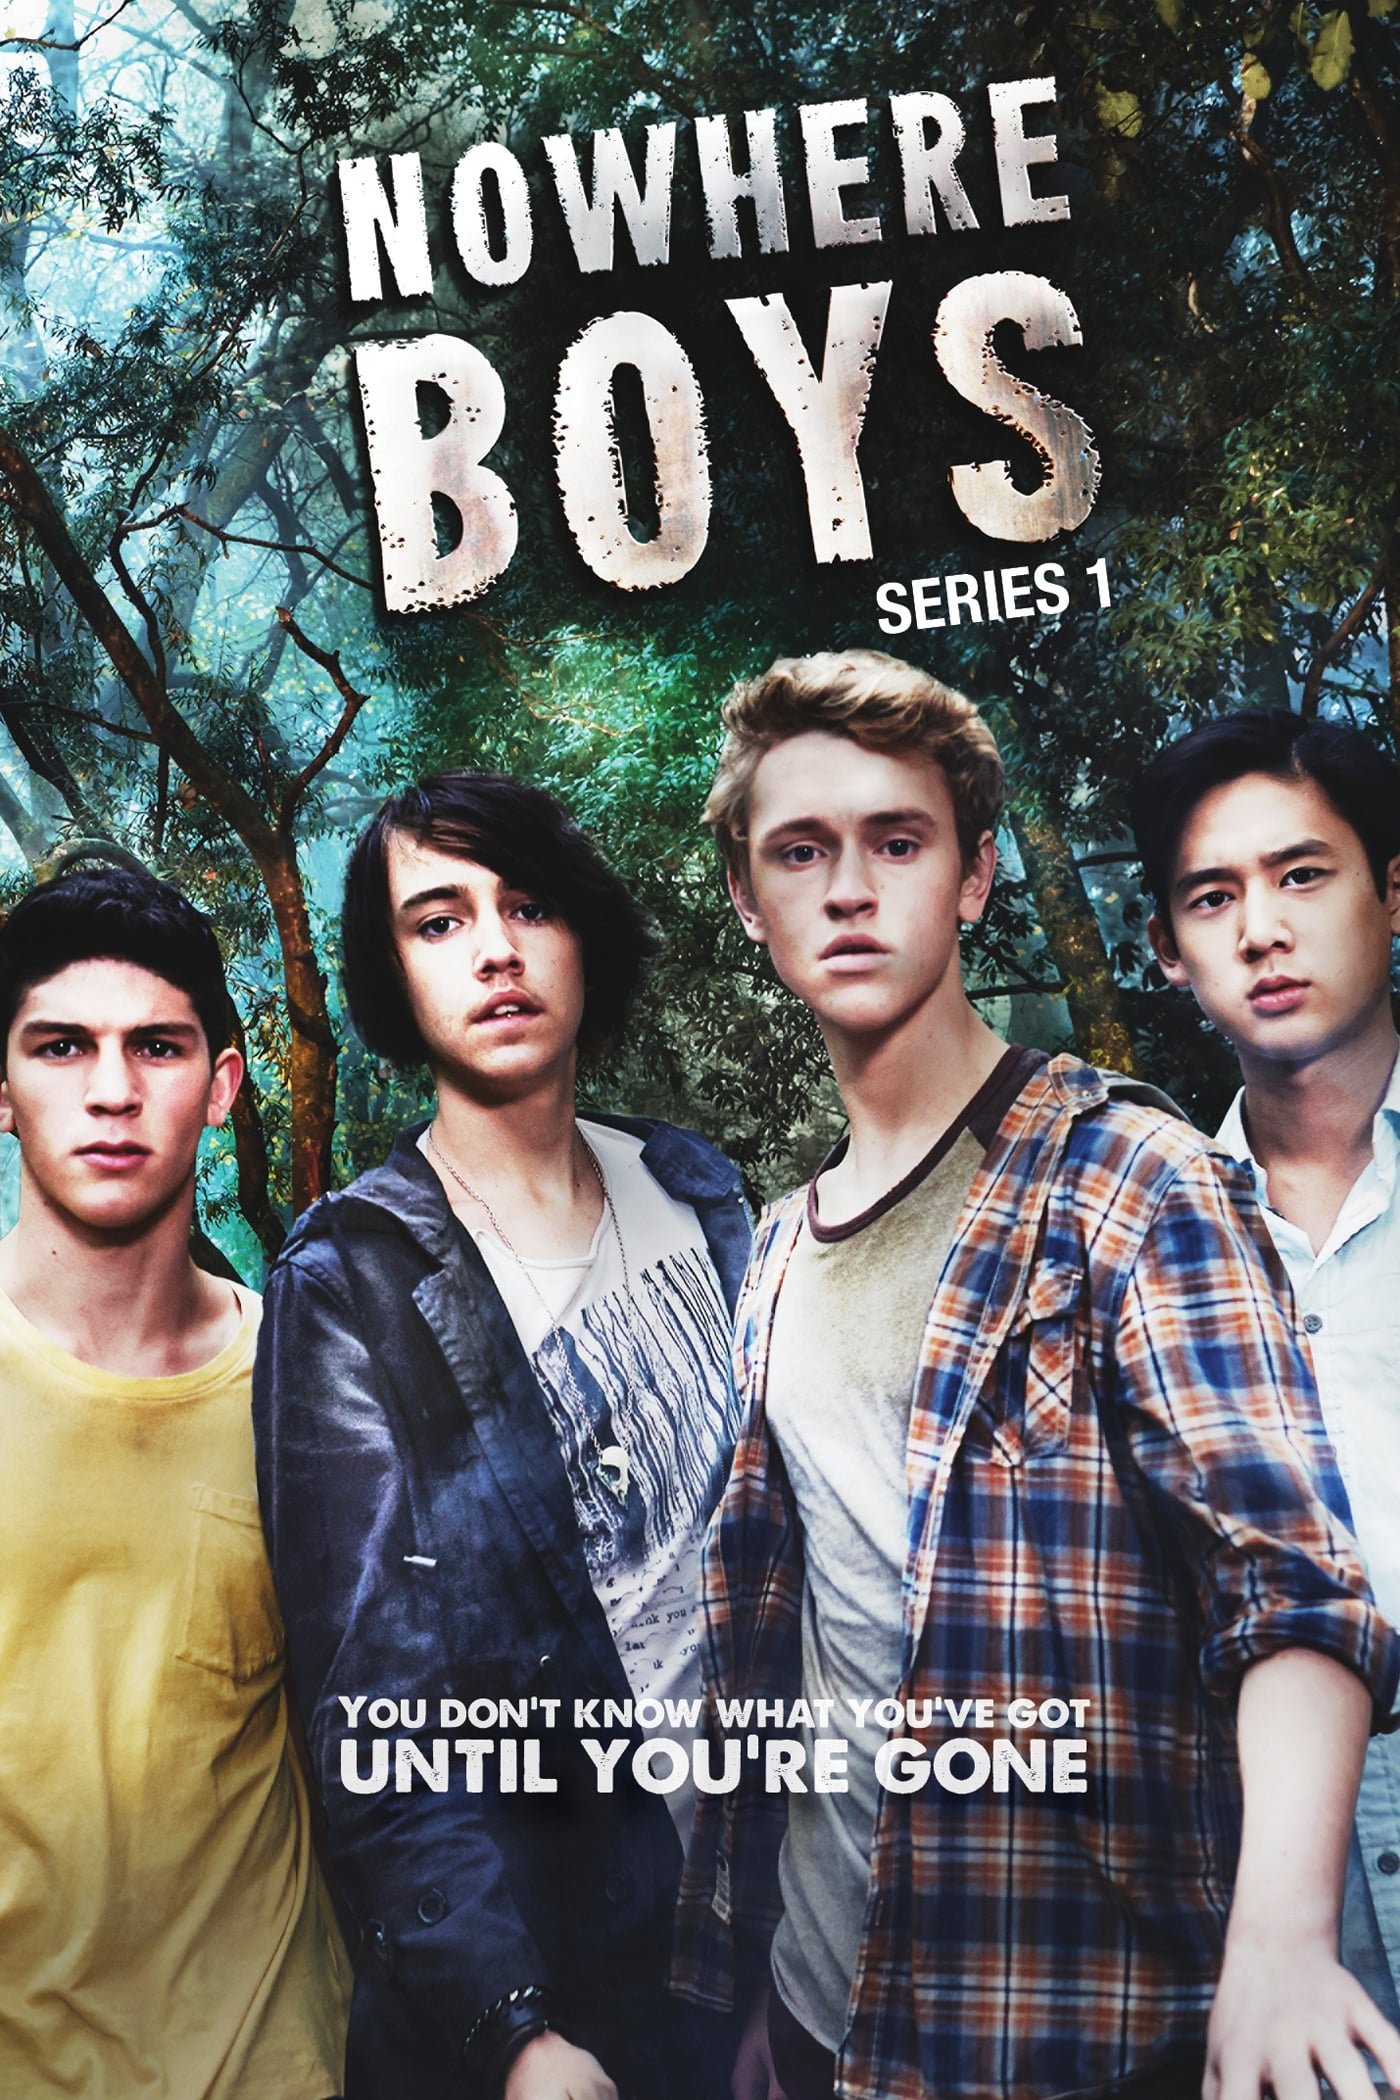 Nowhere Boys Season 1